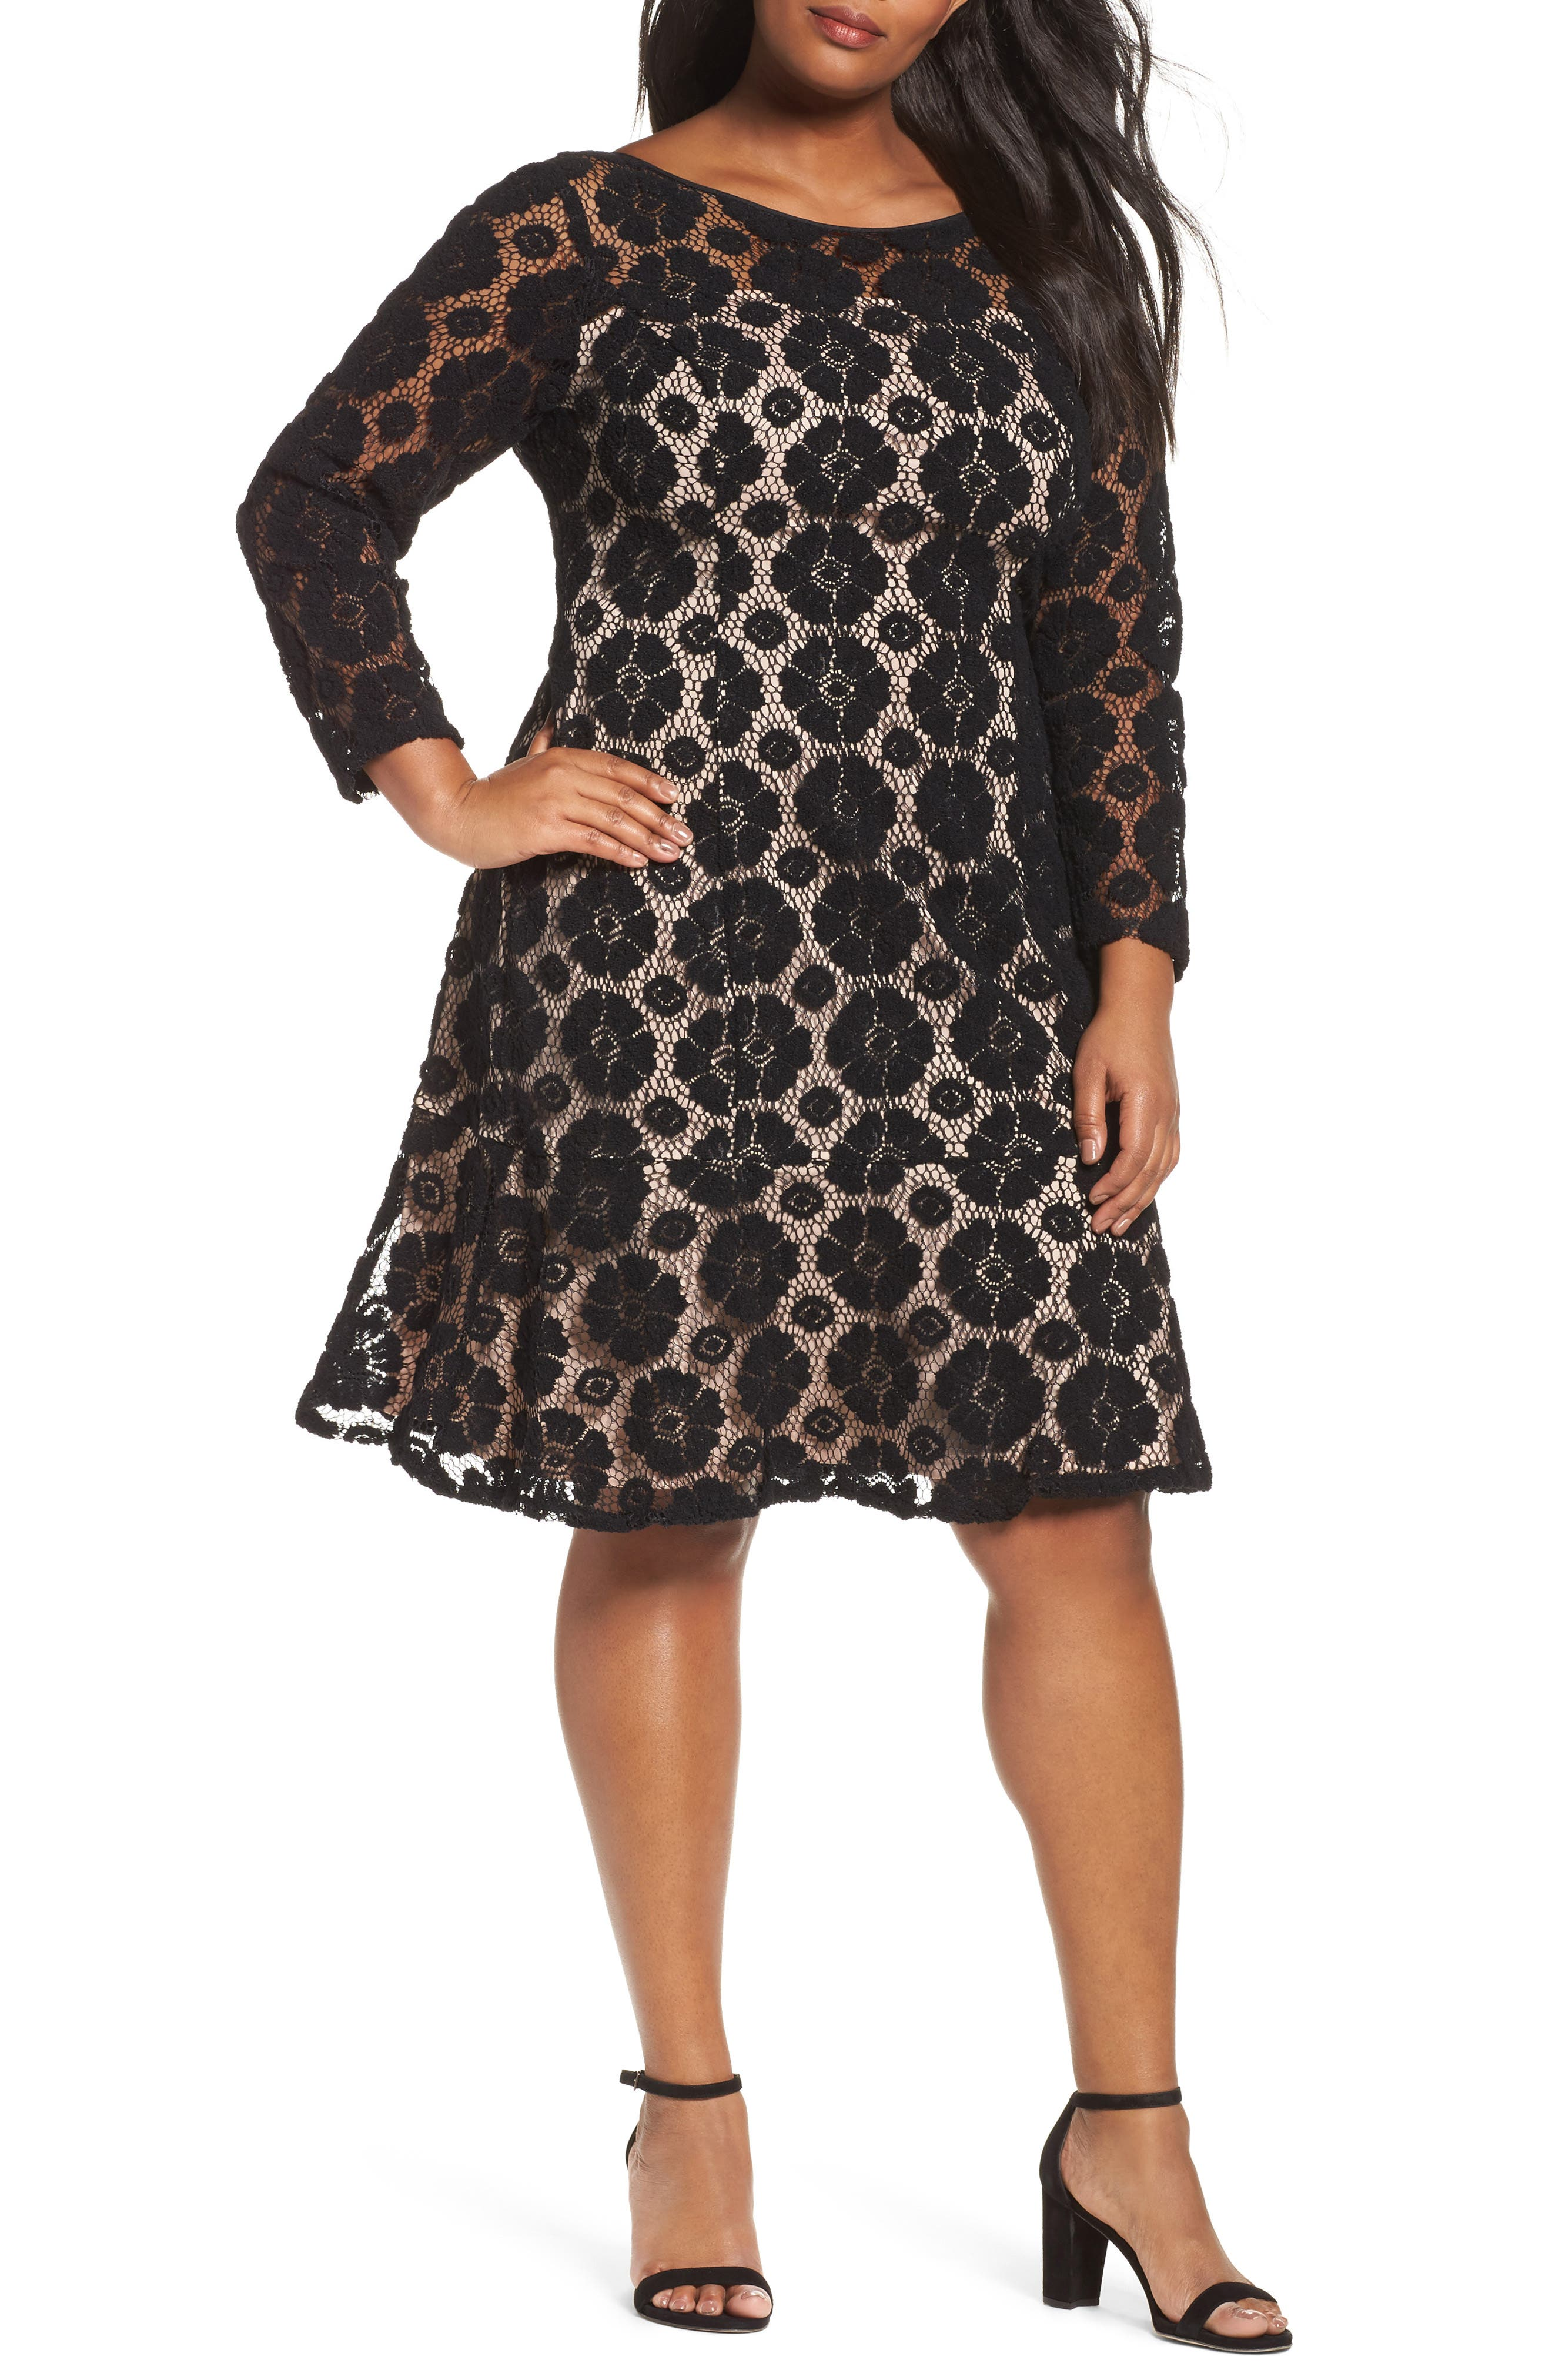 Main Image - Adrianna Papell Textured Floral Lace Shift Dress (Plus Size)